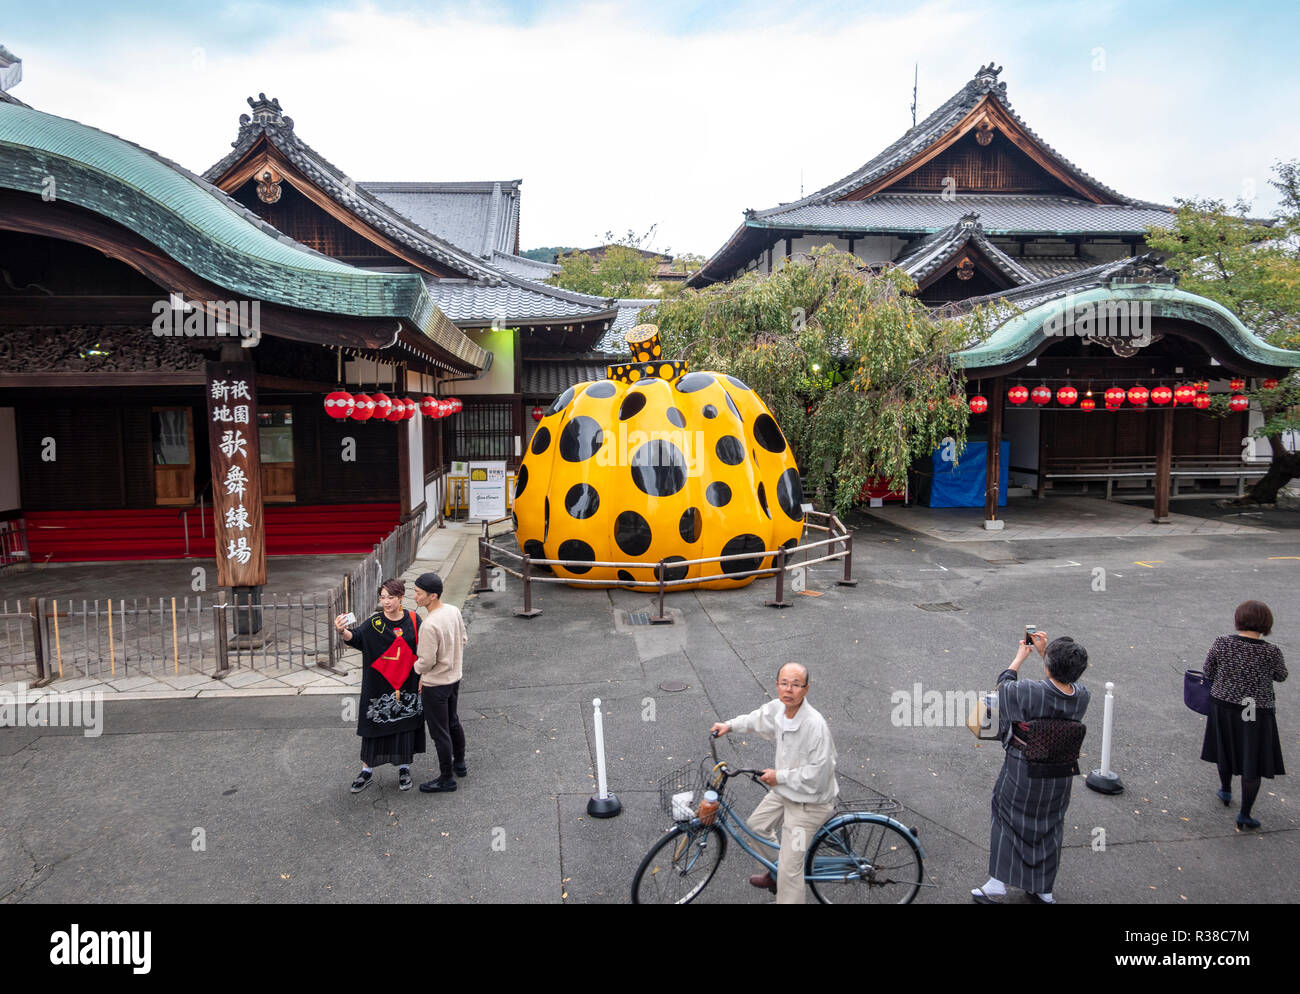 Pumpkin by Yayoi Kusama displayed at the entrance of the Forever Museum of Contemporary Art FMOCA in Gion Kyoto - Stock Image